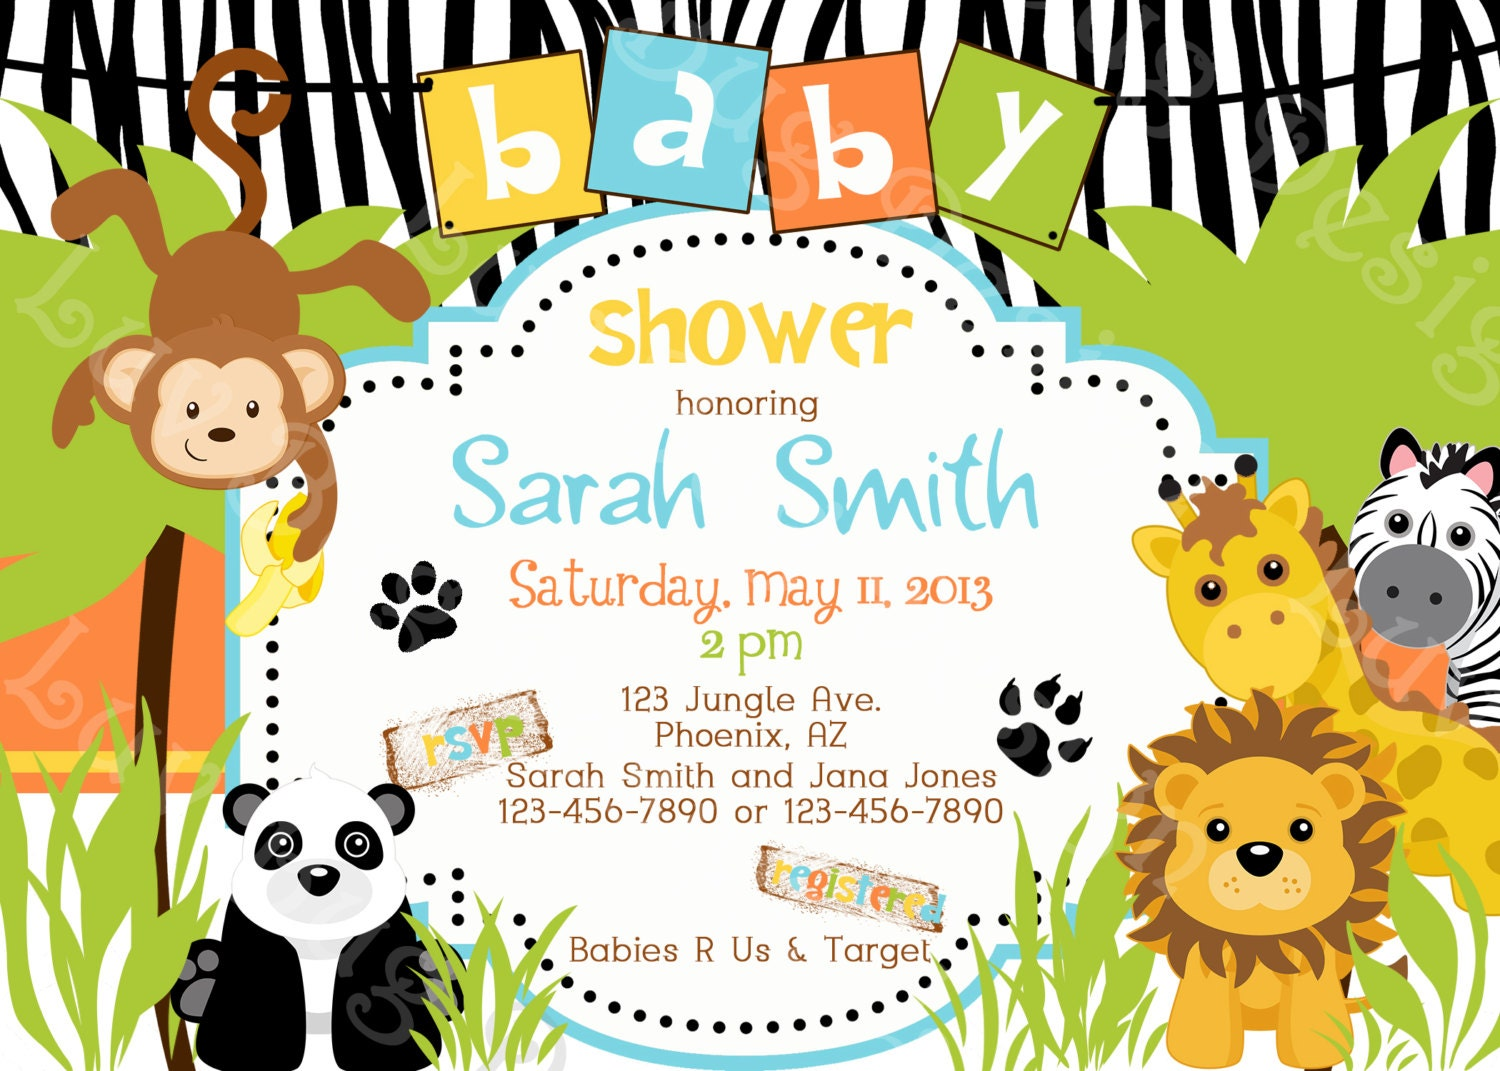 Baby Shower Invitations Jungle Theme is perfect invitations layout